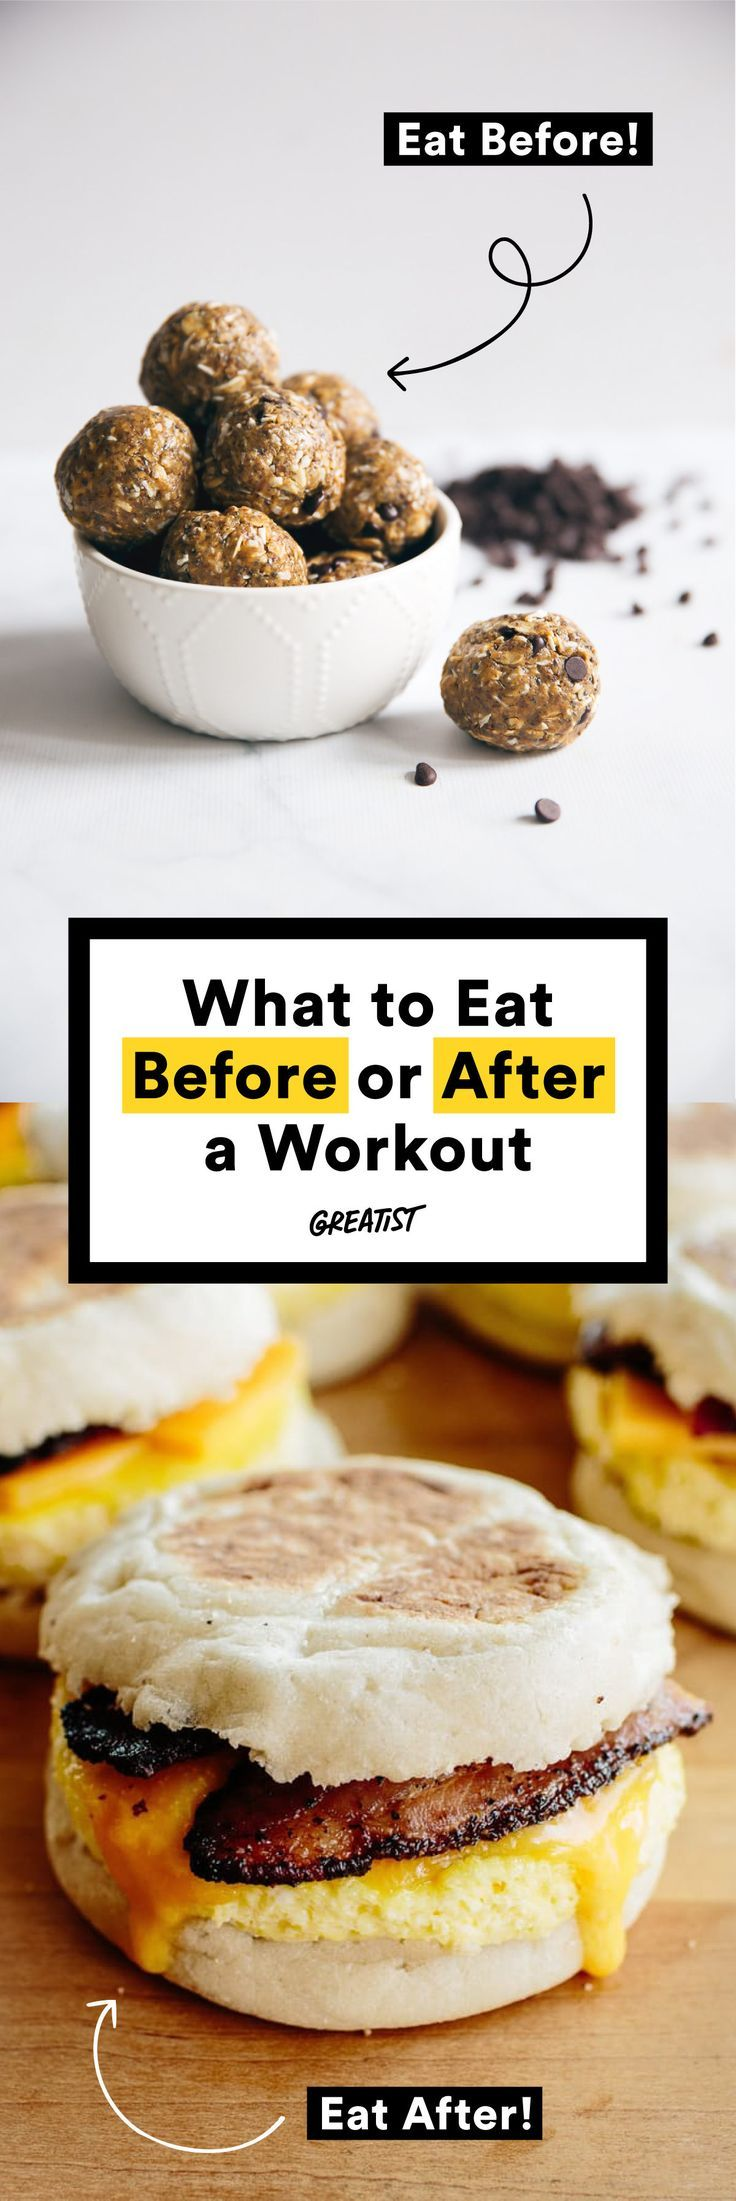 120 best pre and post workout food images on pinterest post 49 snacks to eat before or after your workout forumfinder Image collections